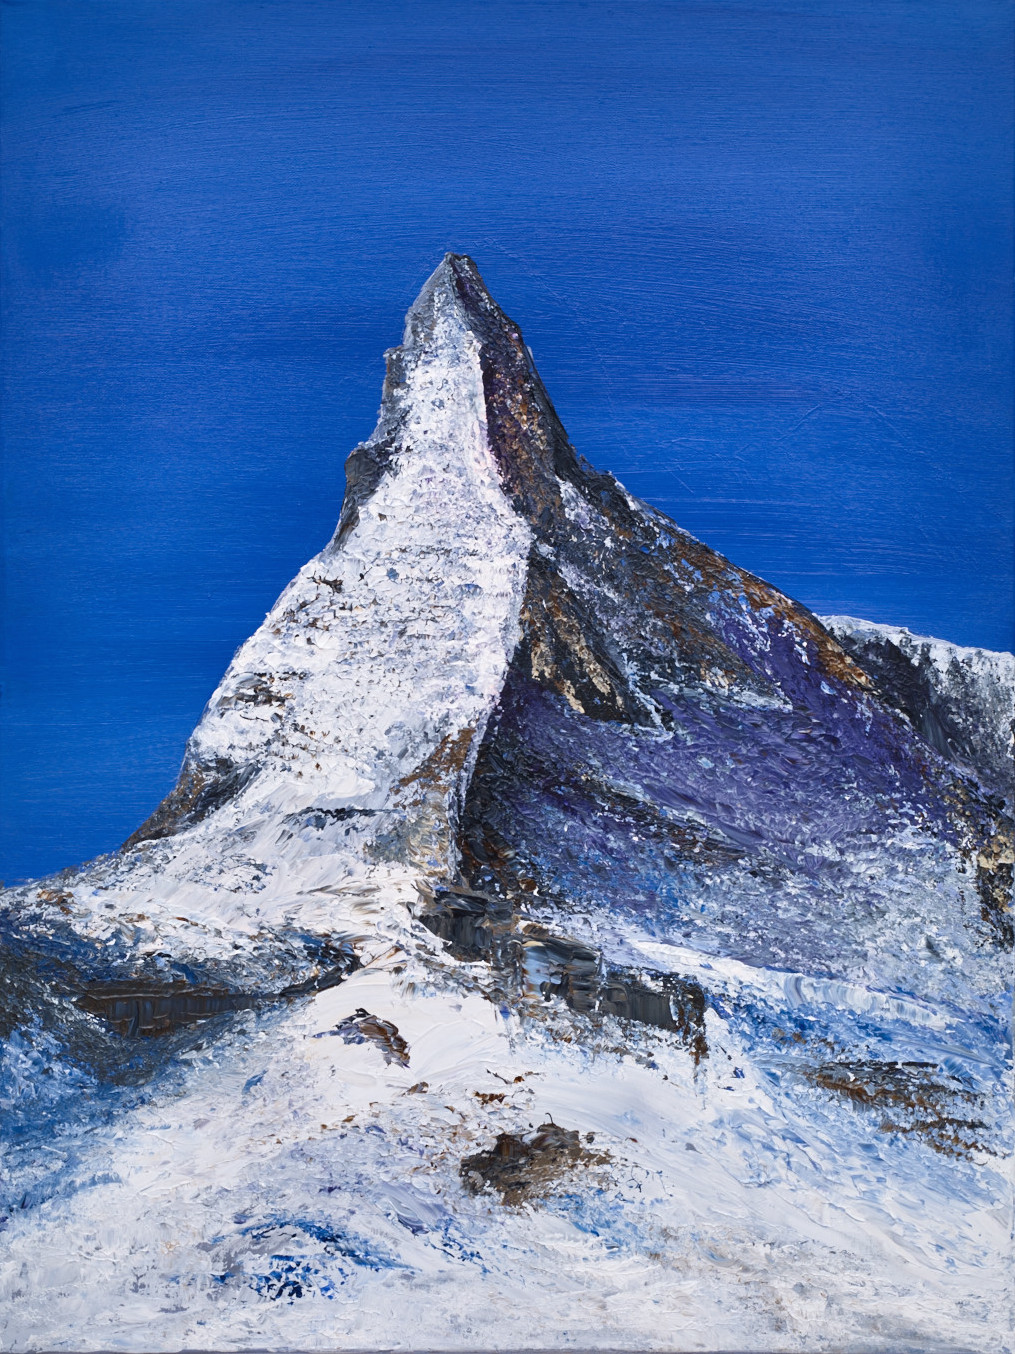 The Matterhorn at the Saffron Walden Gallery